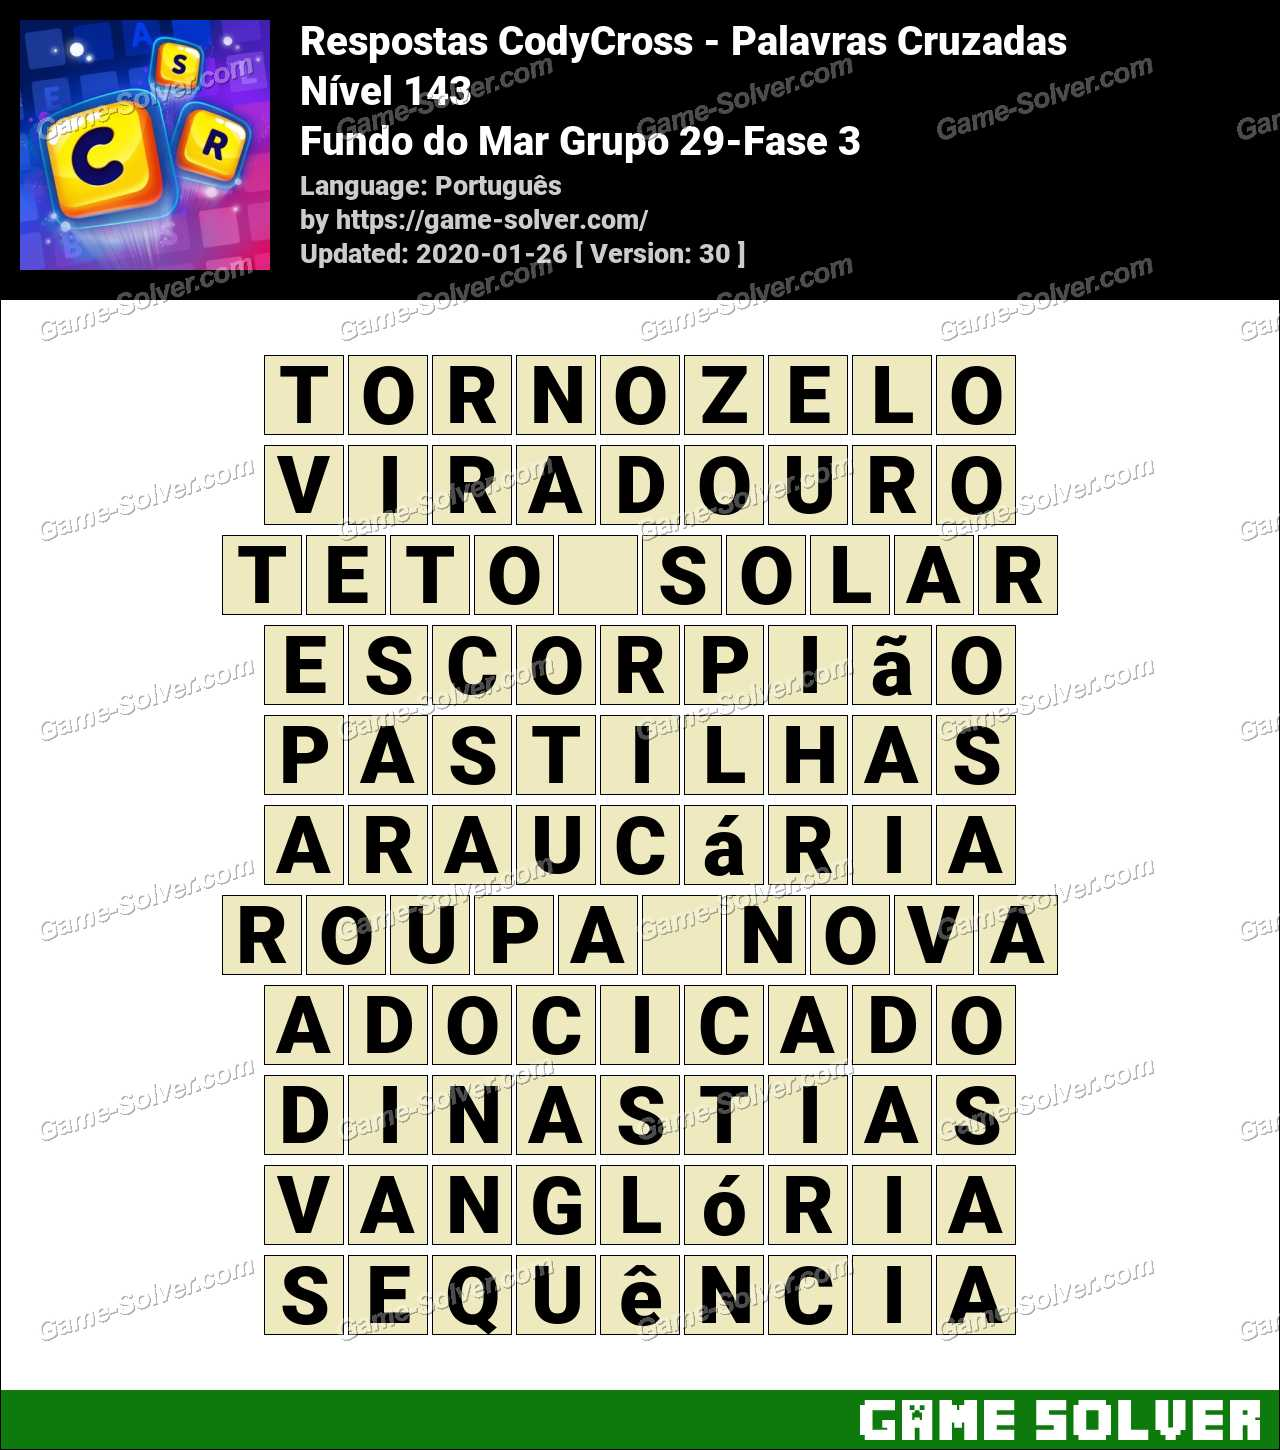 Respostas CodyCross Fundo do Mar Grupo 29-Fase 3